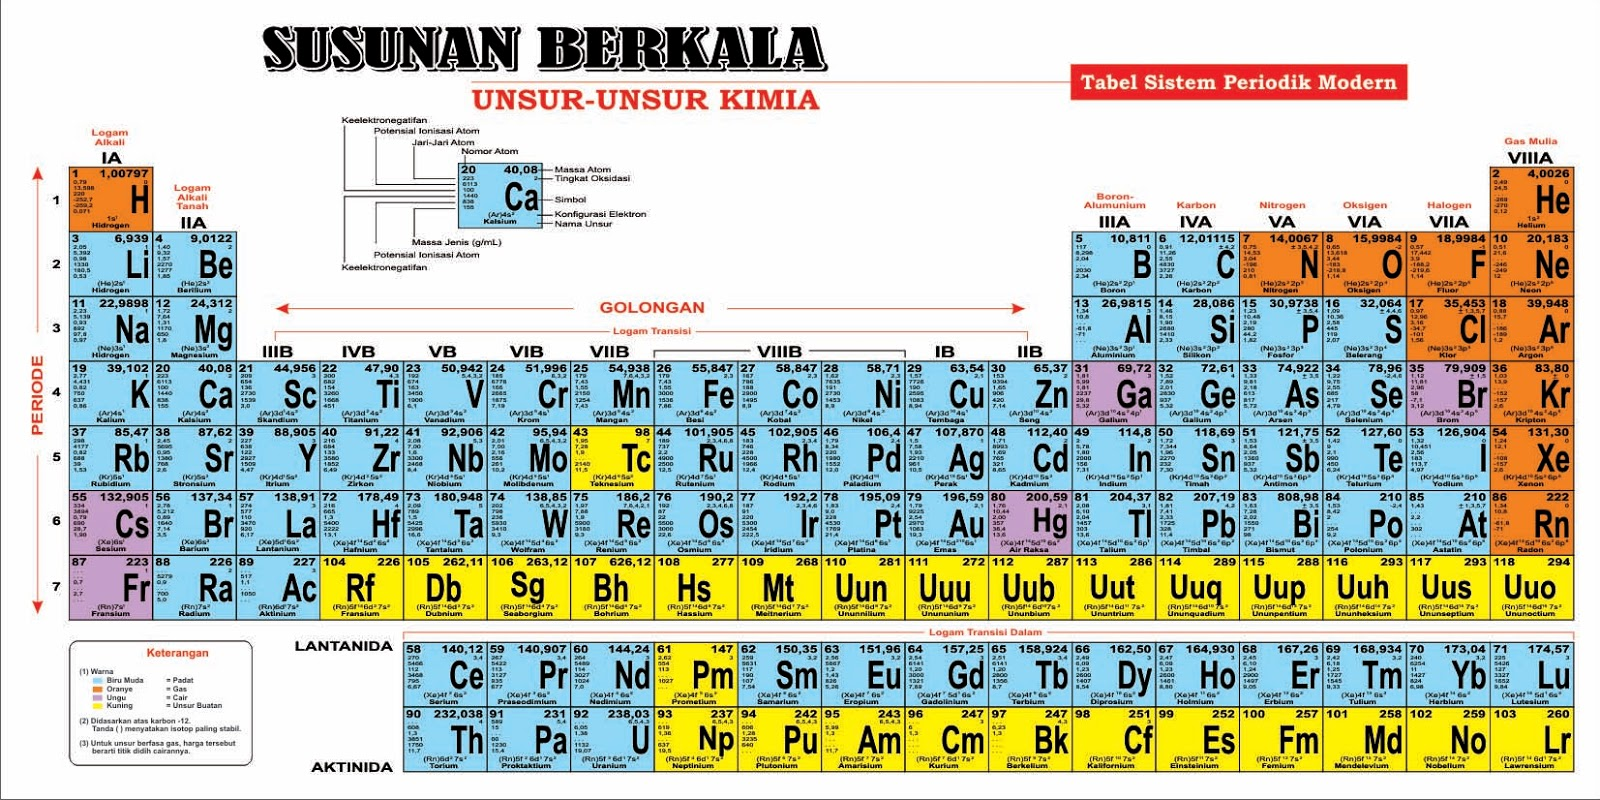 Periodik tabel indonesian periodic tables of the elements michael click for periodic table sundanesemalayjavanese ccuart Choice Image